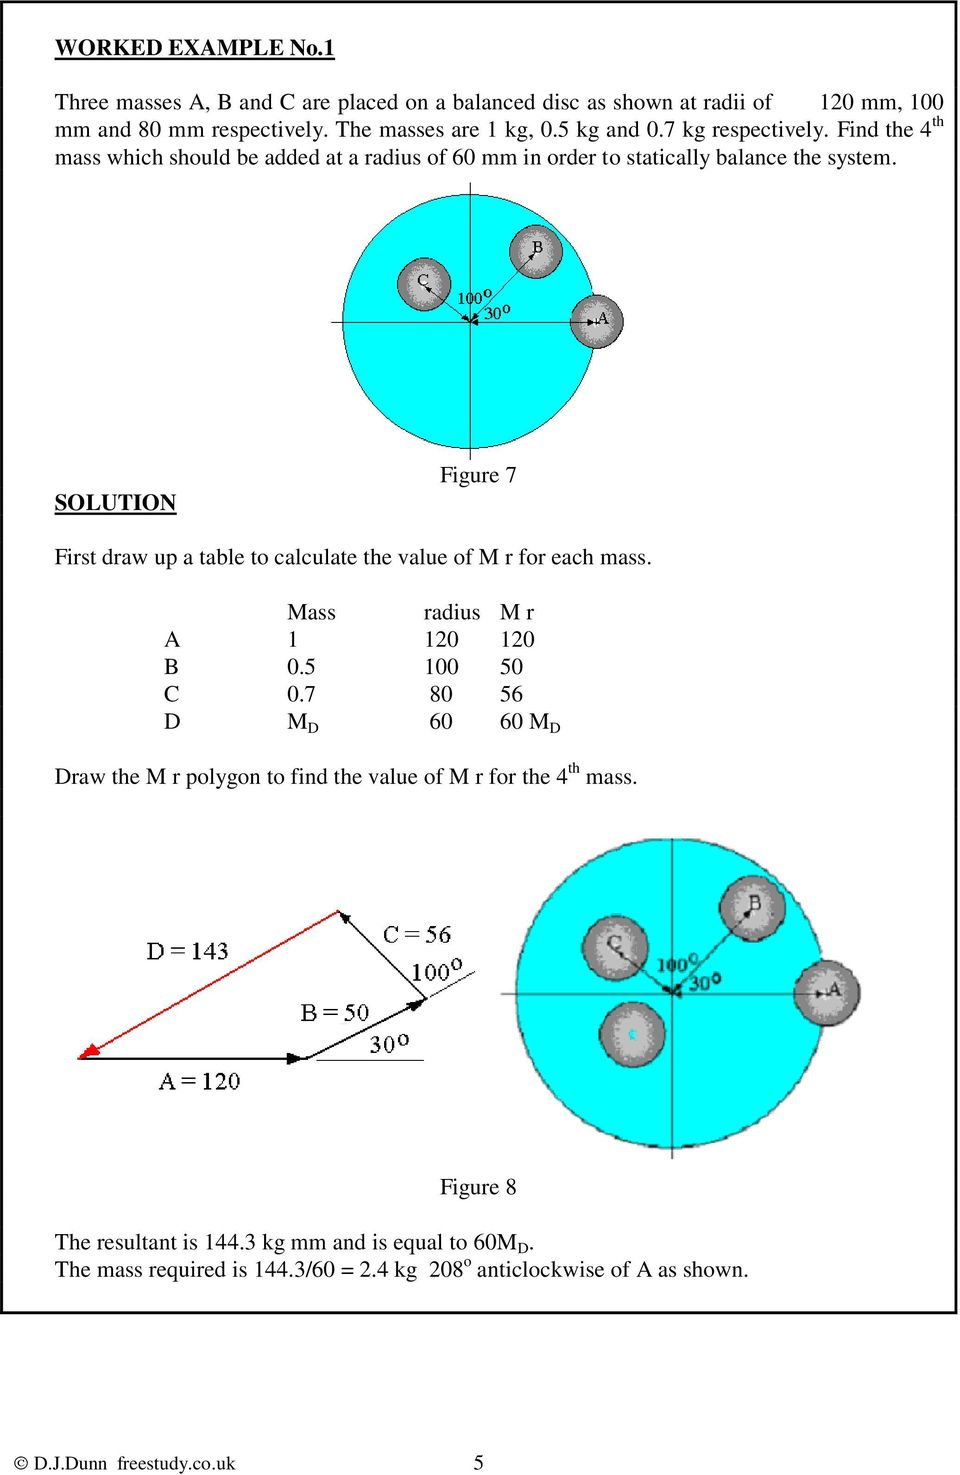 SOLUTION Figure 7 First draw up a table to calculate the value of M r for each mass. Mass radius M r A 1 120 120 B 0.5 100 50 C 0.